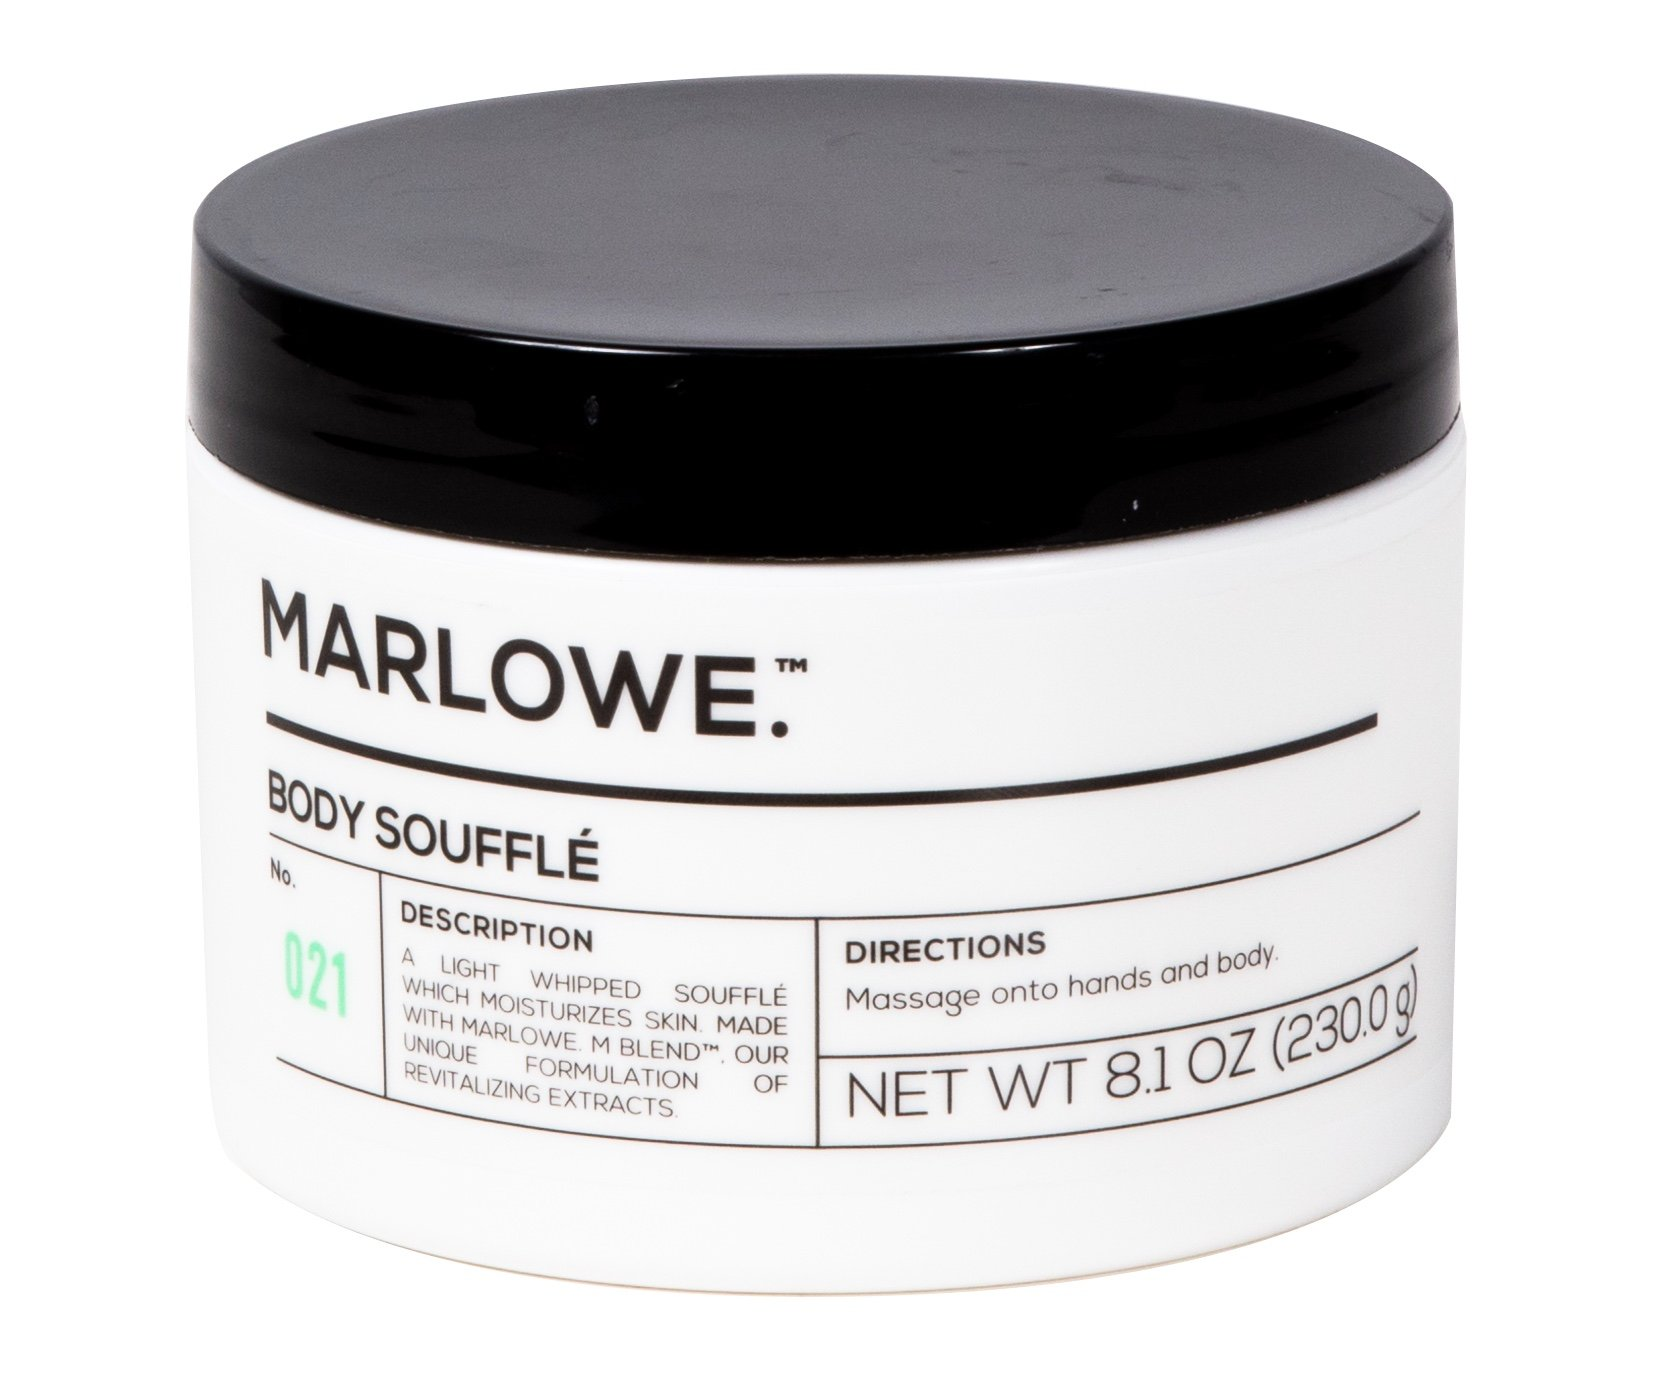 MARLOWE. No. 021 Body Soufflé 8 oz | Soft, Creamy, Light Whipped Lotion | Hydrating Dry Skin Cream | Clean, Natural Scent